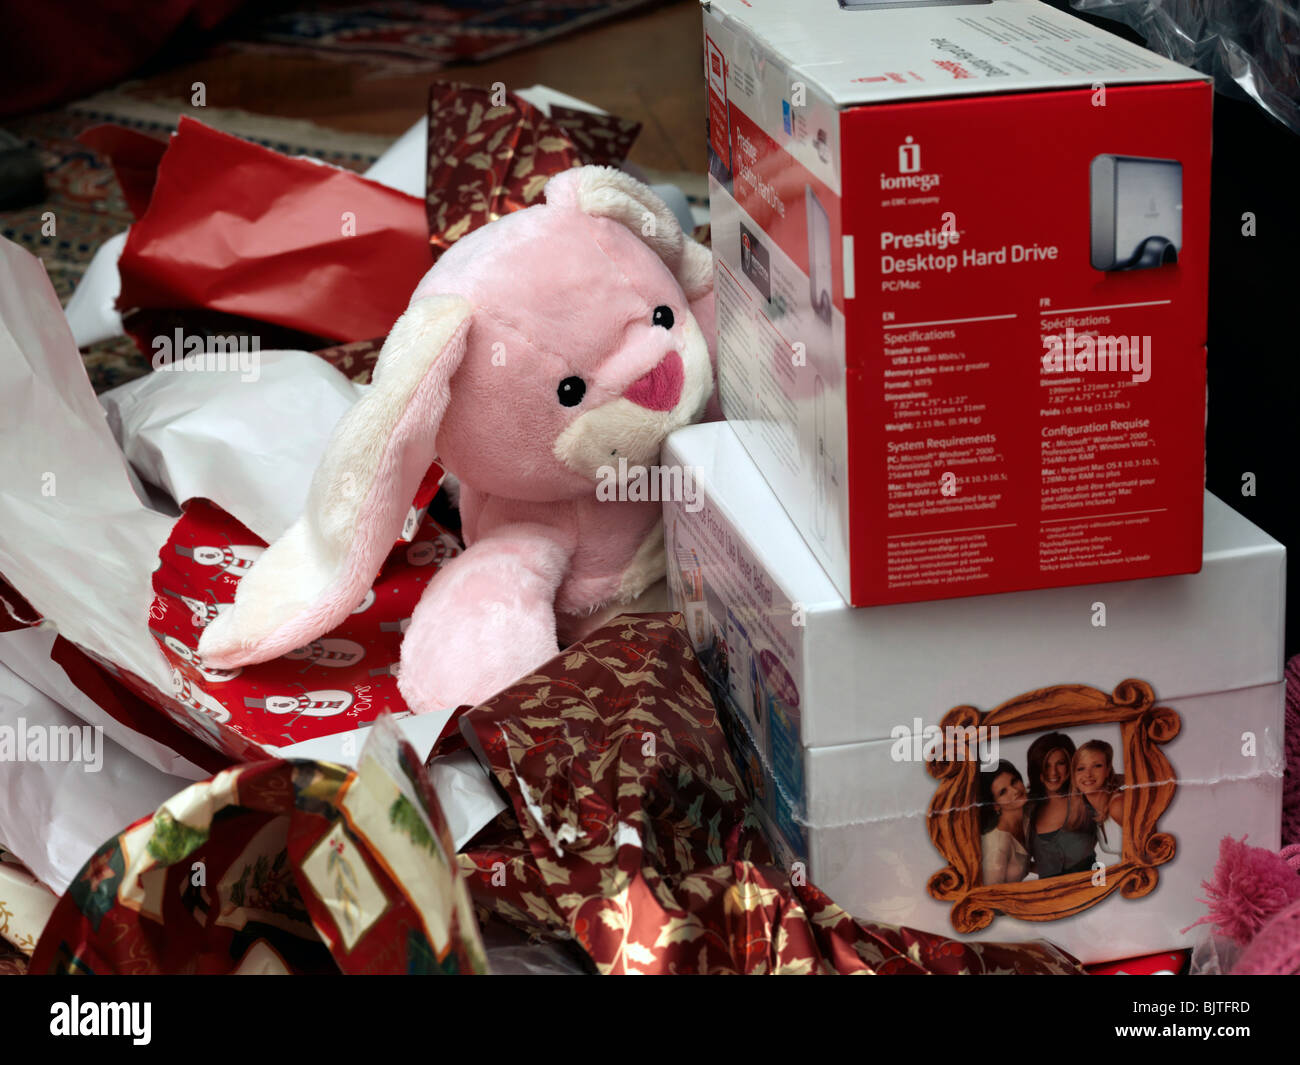 Unwrapped Christmas Presents Cuddly Toy Desktop Hardrive And